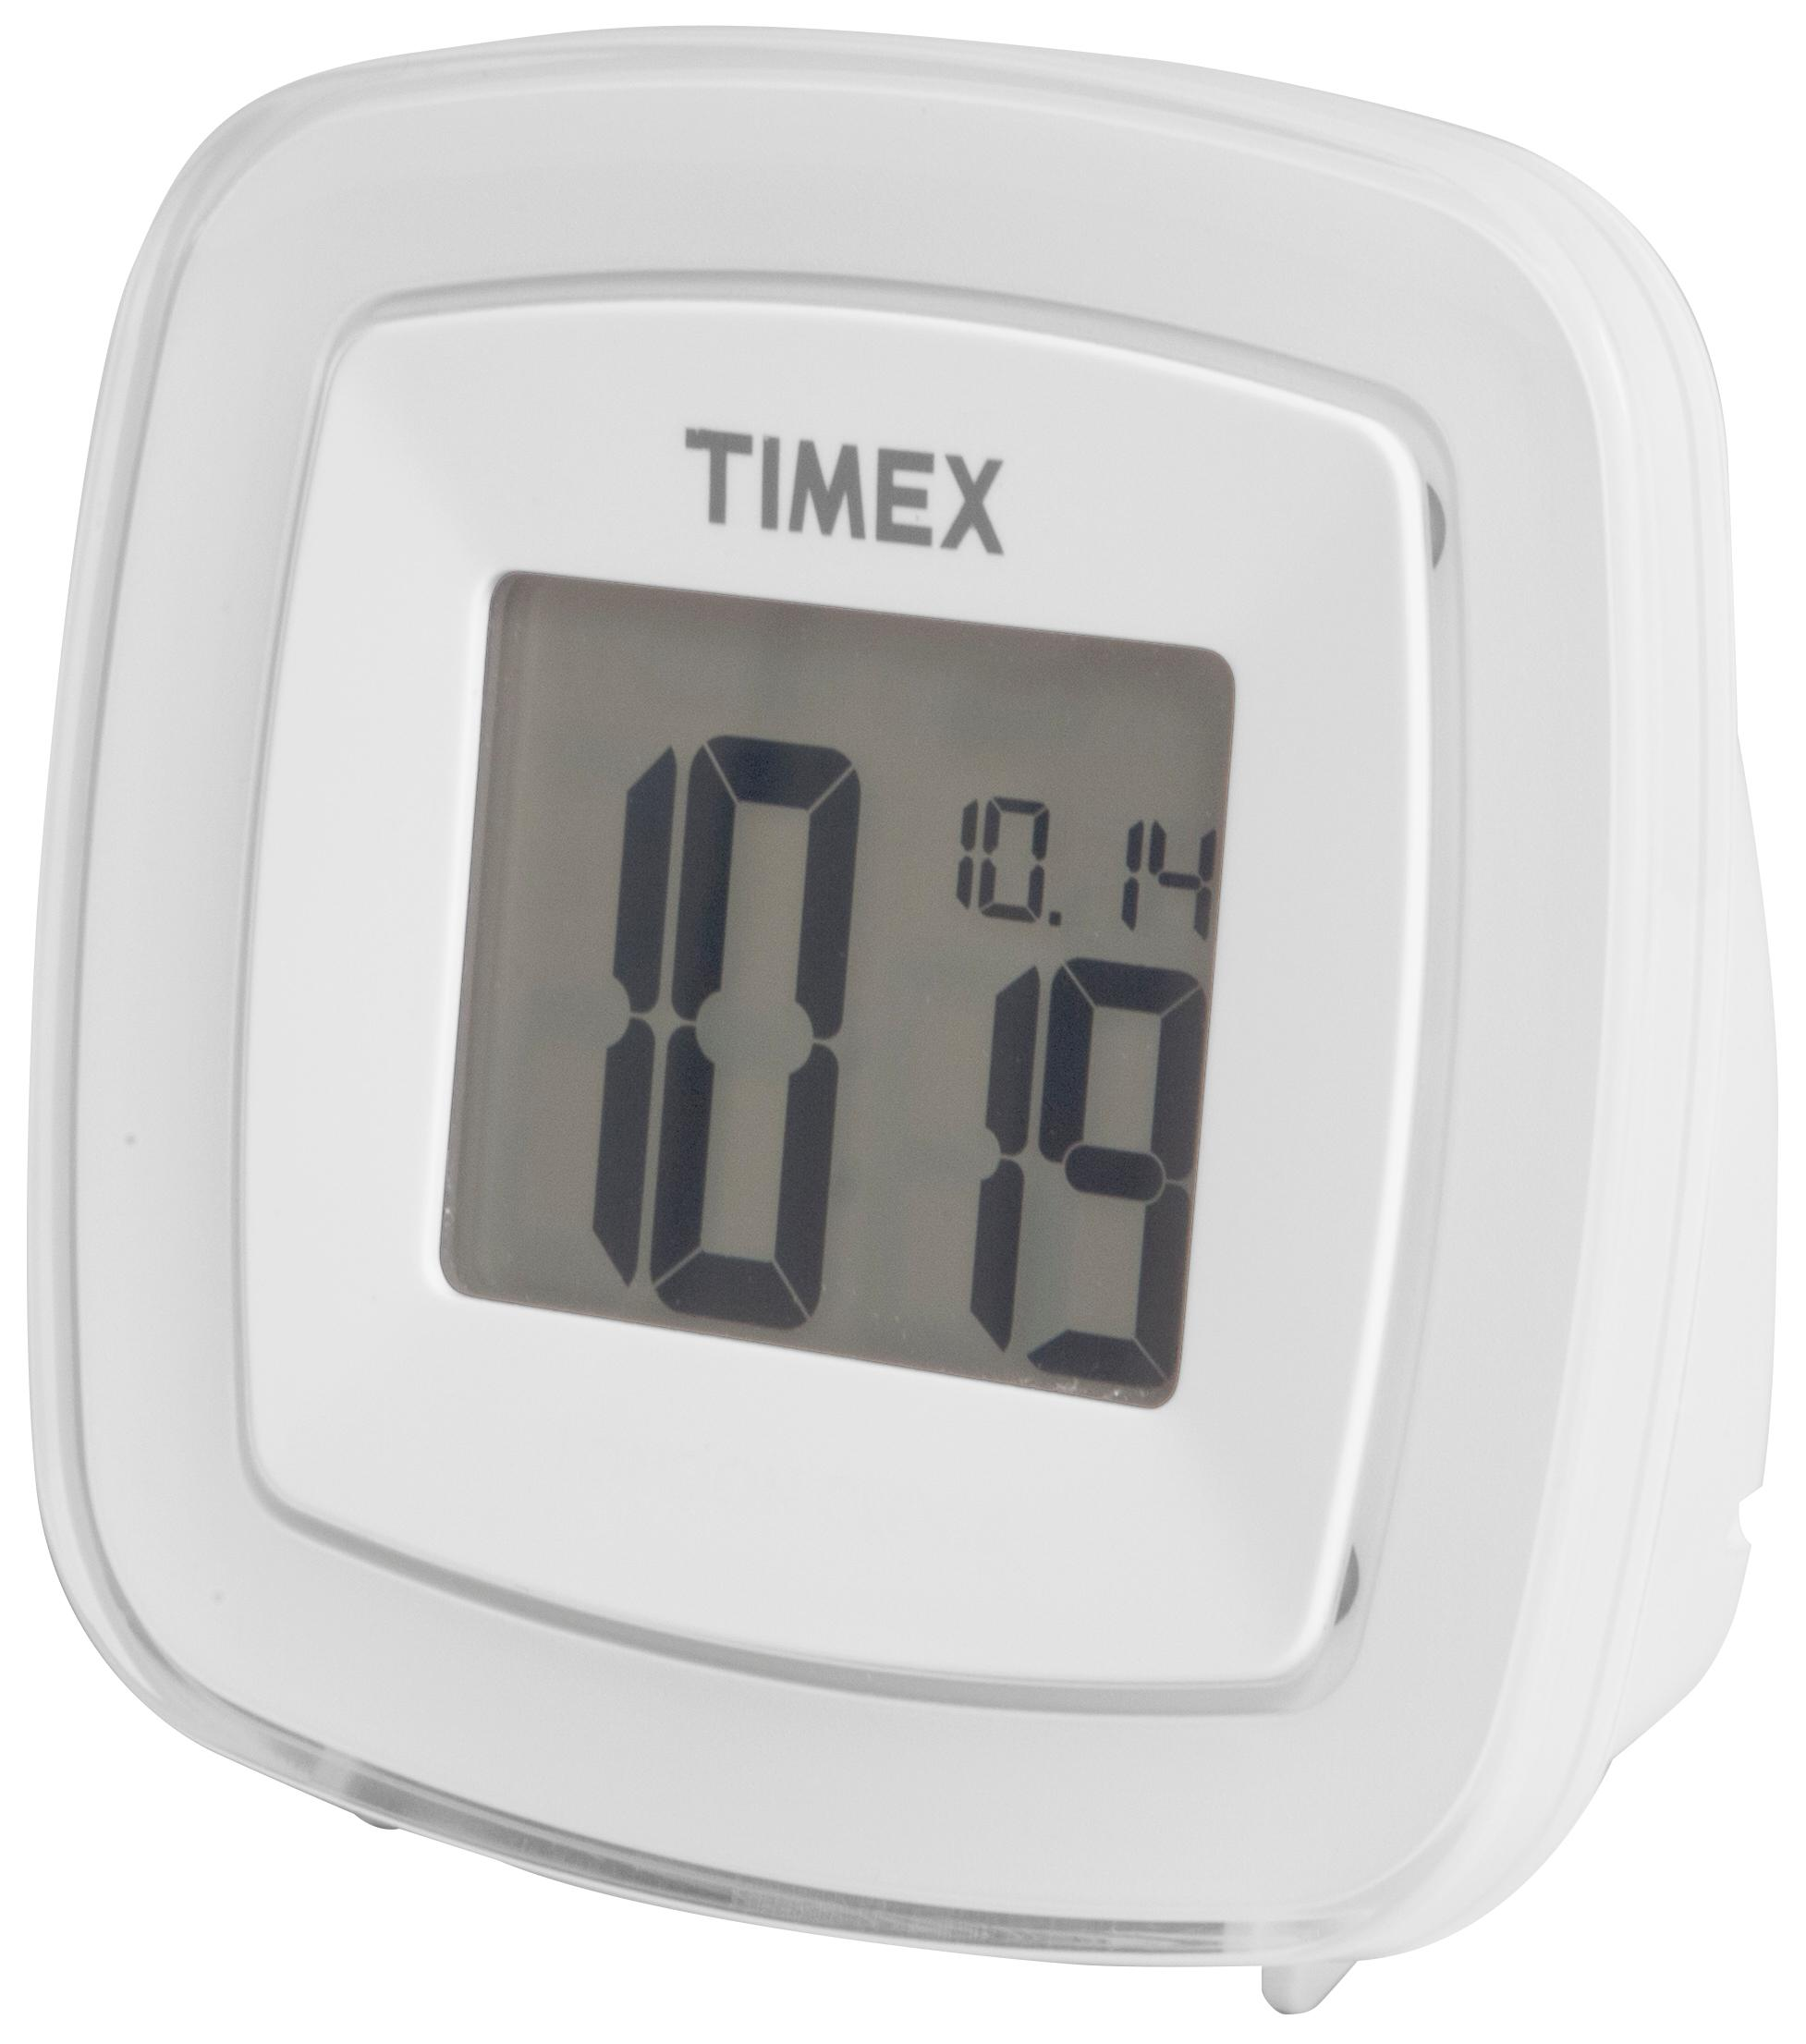 Dual alarms that can be set and used independently ...